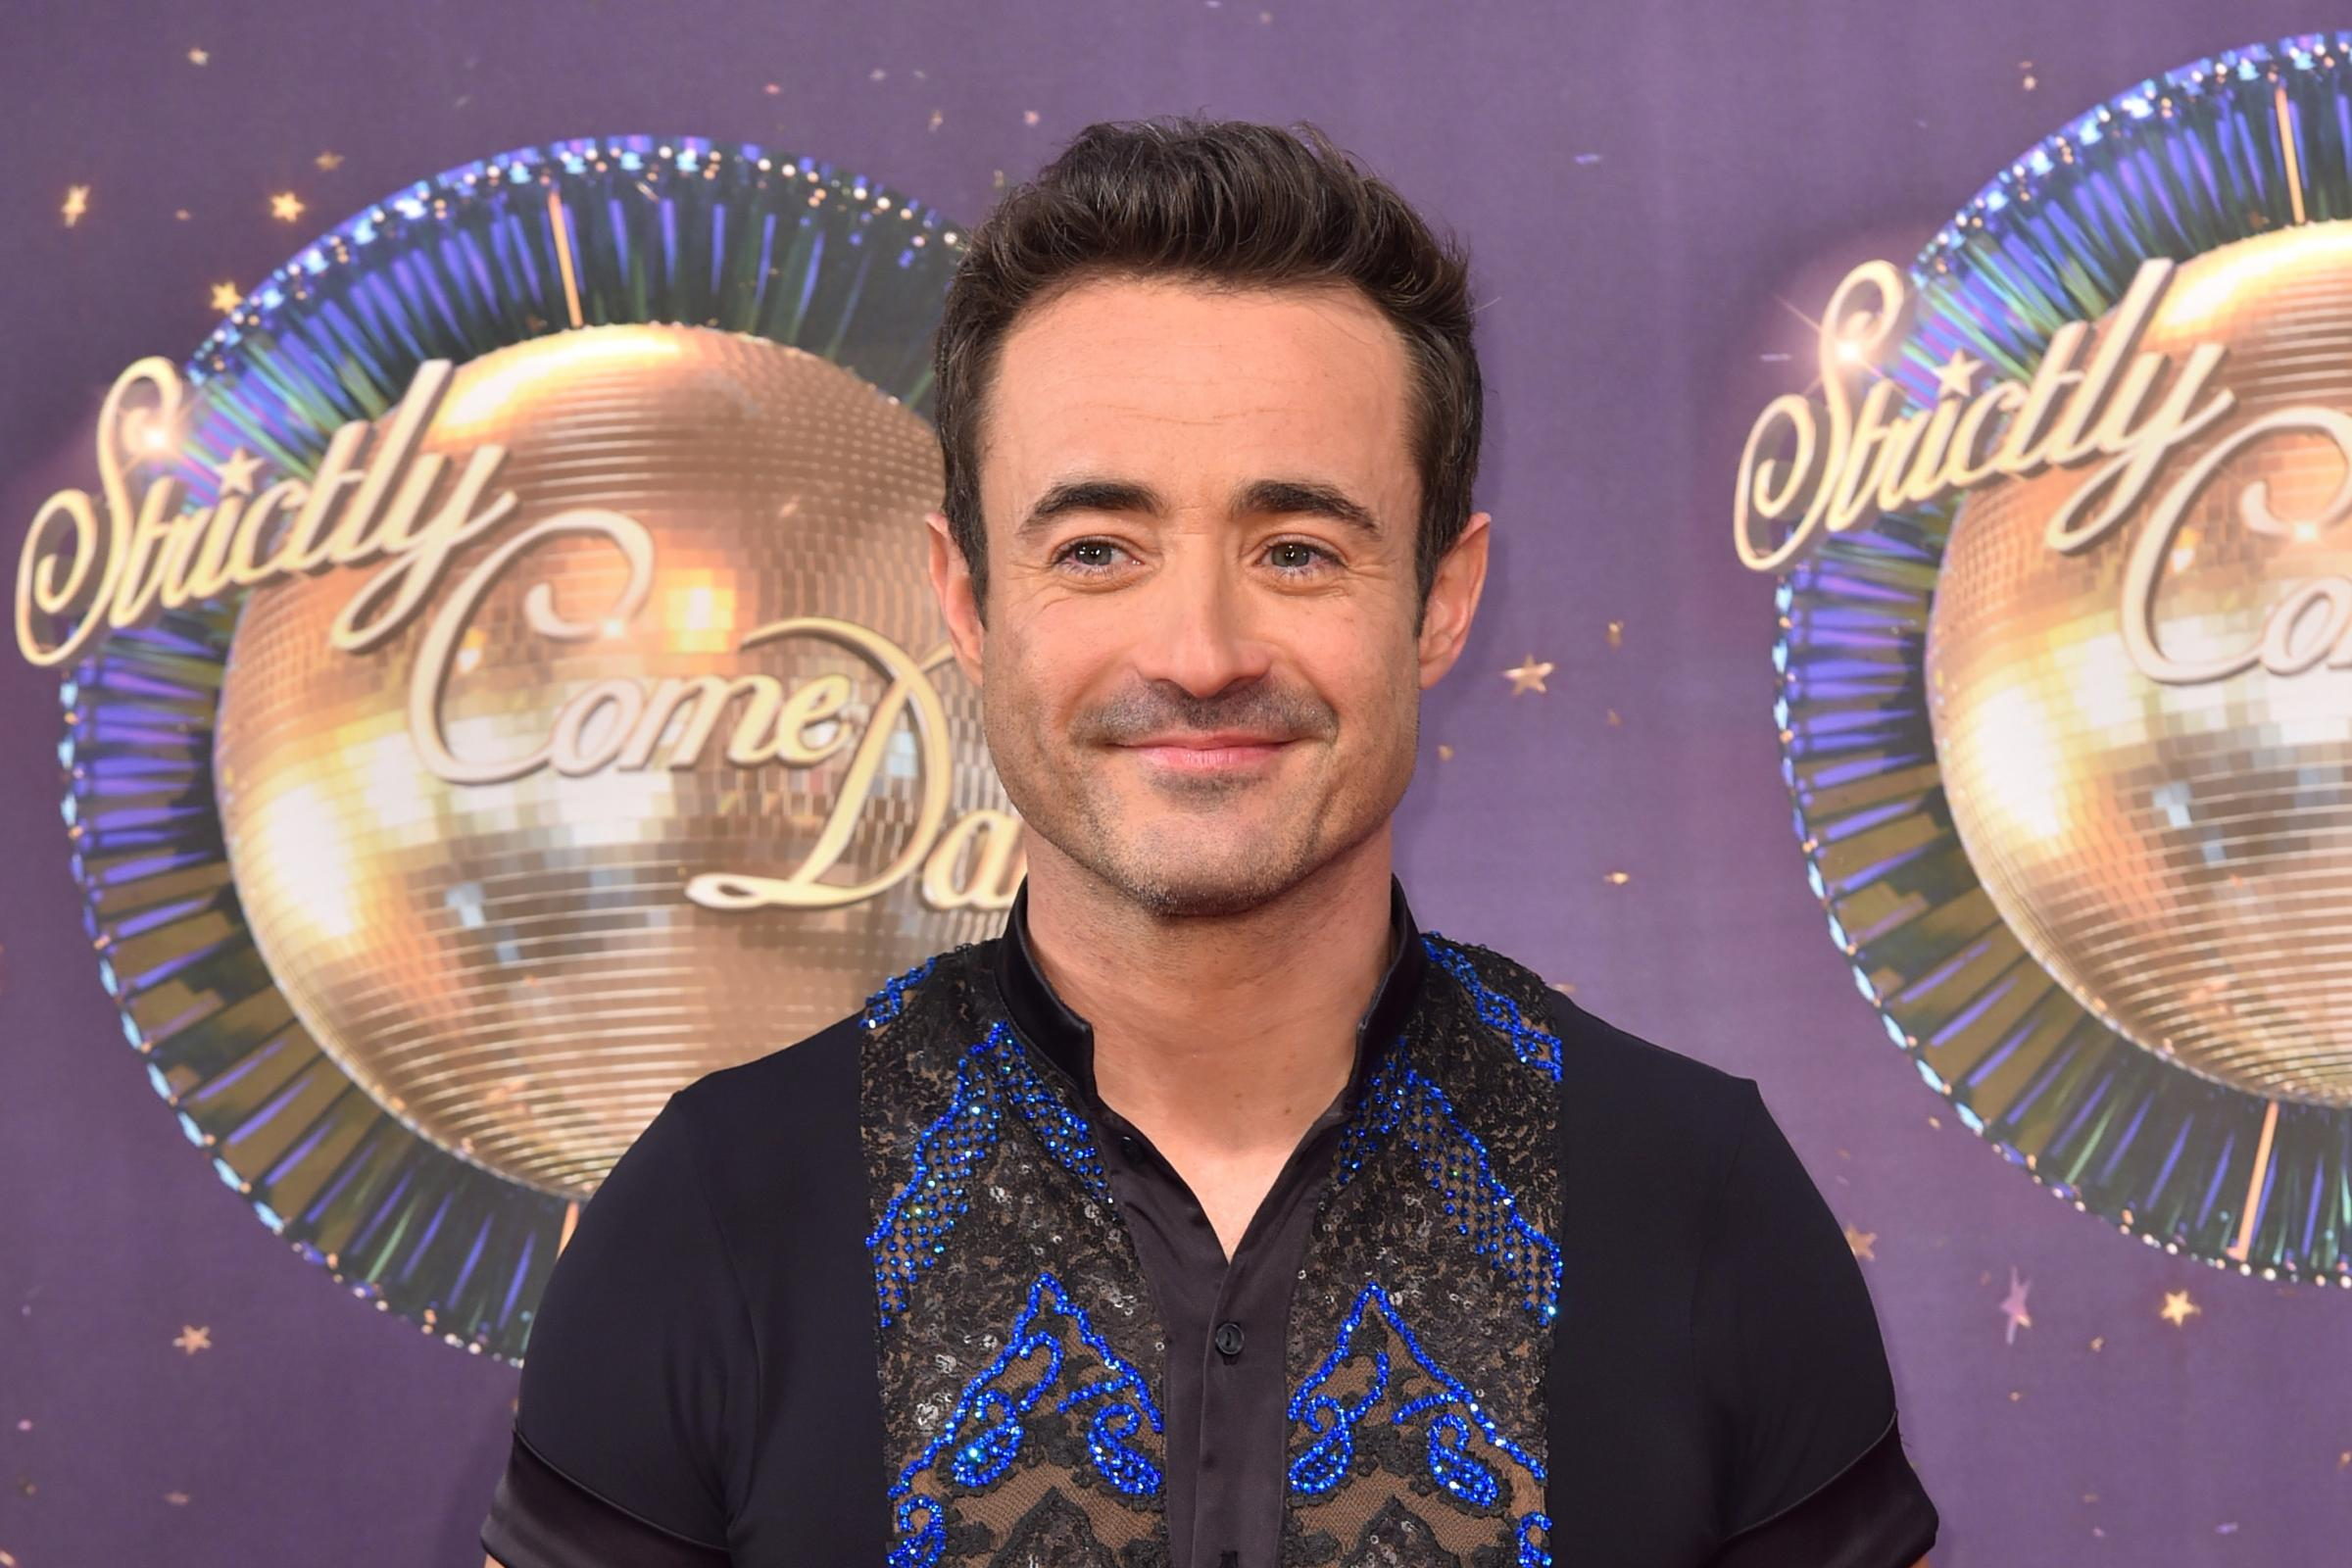 Strictly's Joe McFadden left Holby City in dramatic fashion (Matt Crossick/PA)